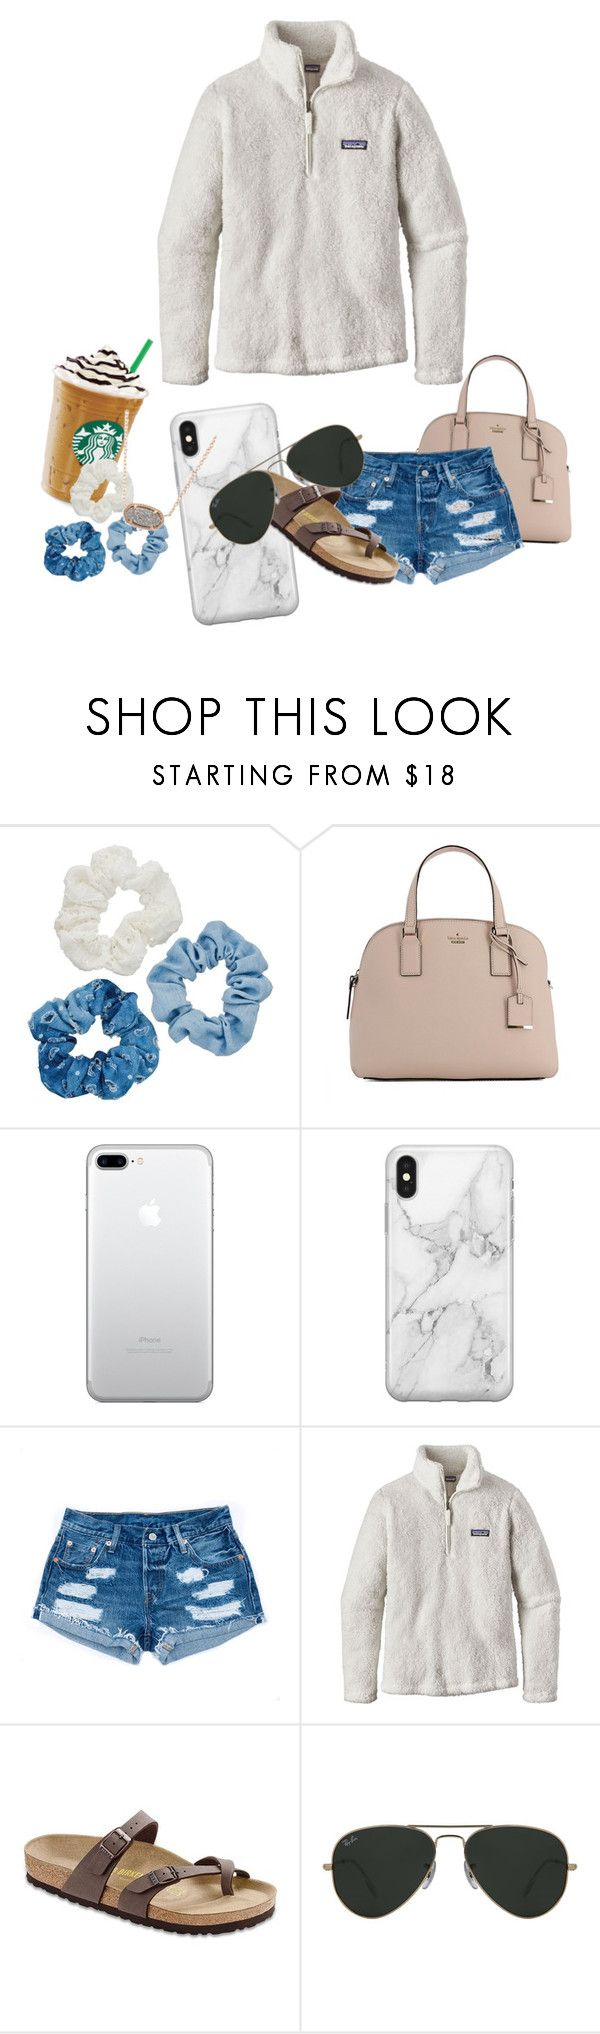 """""""Shopping Trip"""" by rachelle558 ❤ liked on Polyvore featuring Mudd, Kate Spade, Recover, Patagonia, Birkenstock, Ray-Ban and Kendra Scott"""